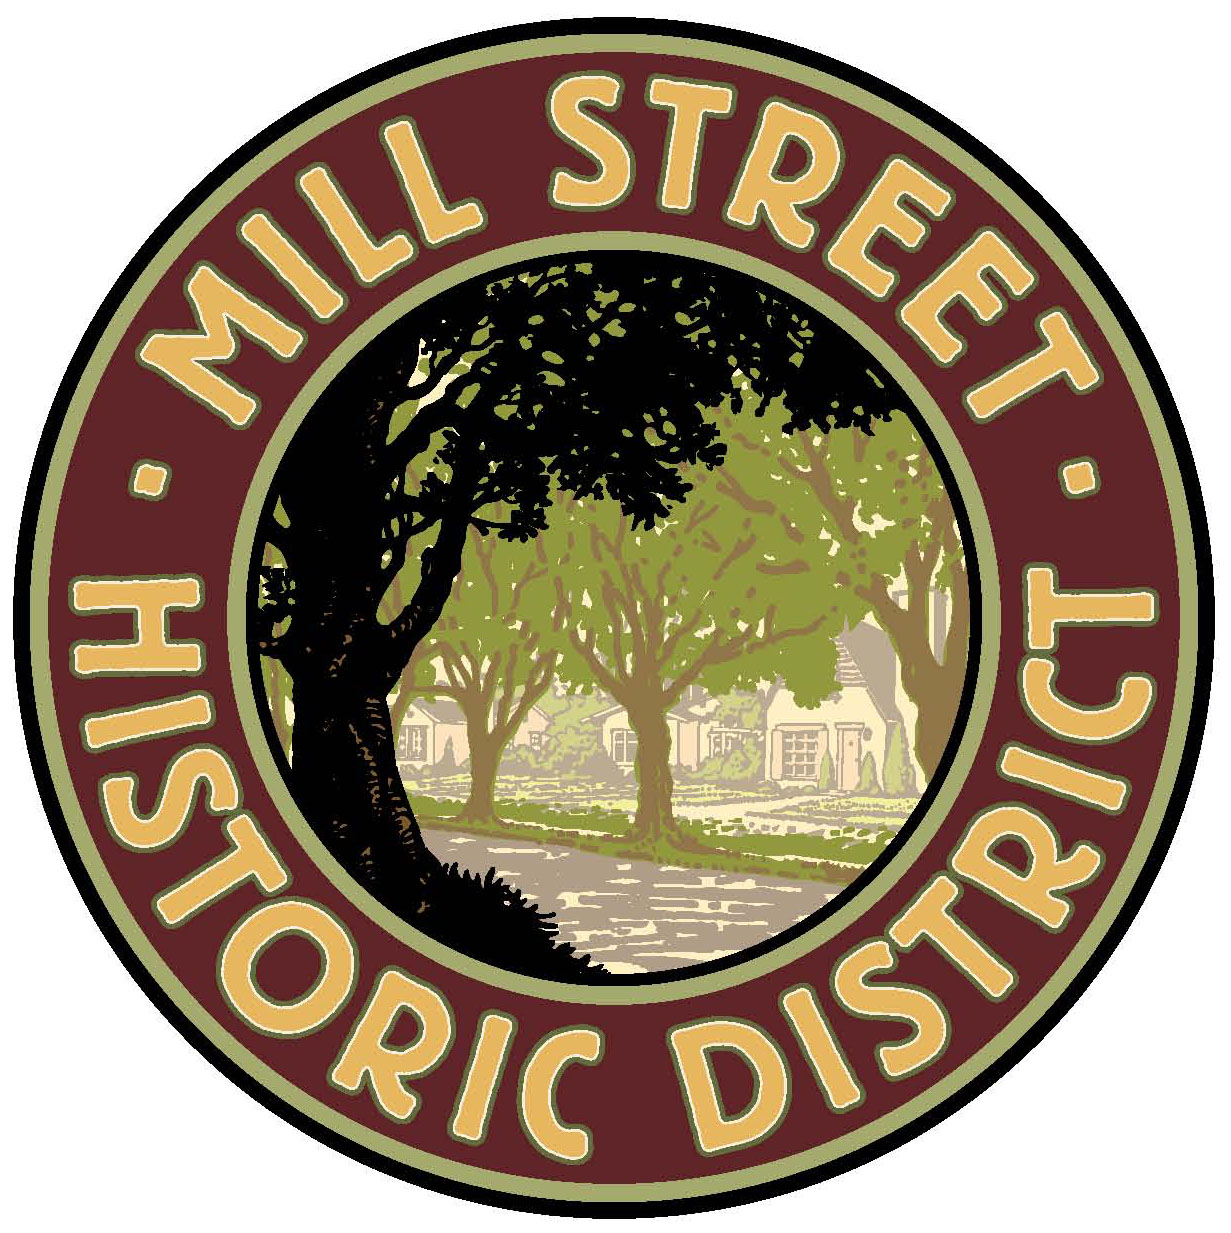 Mill Street District sign